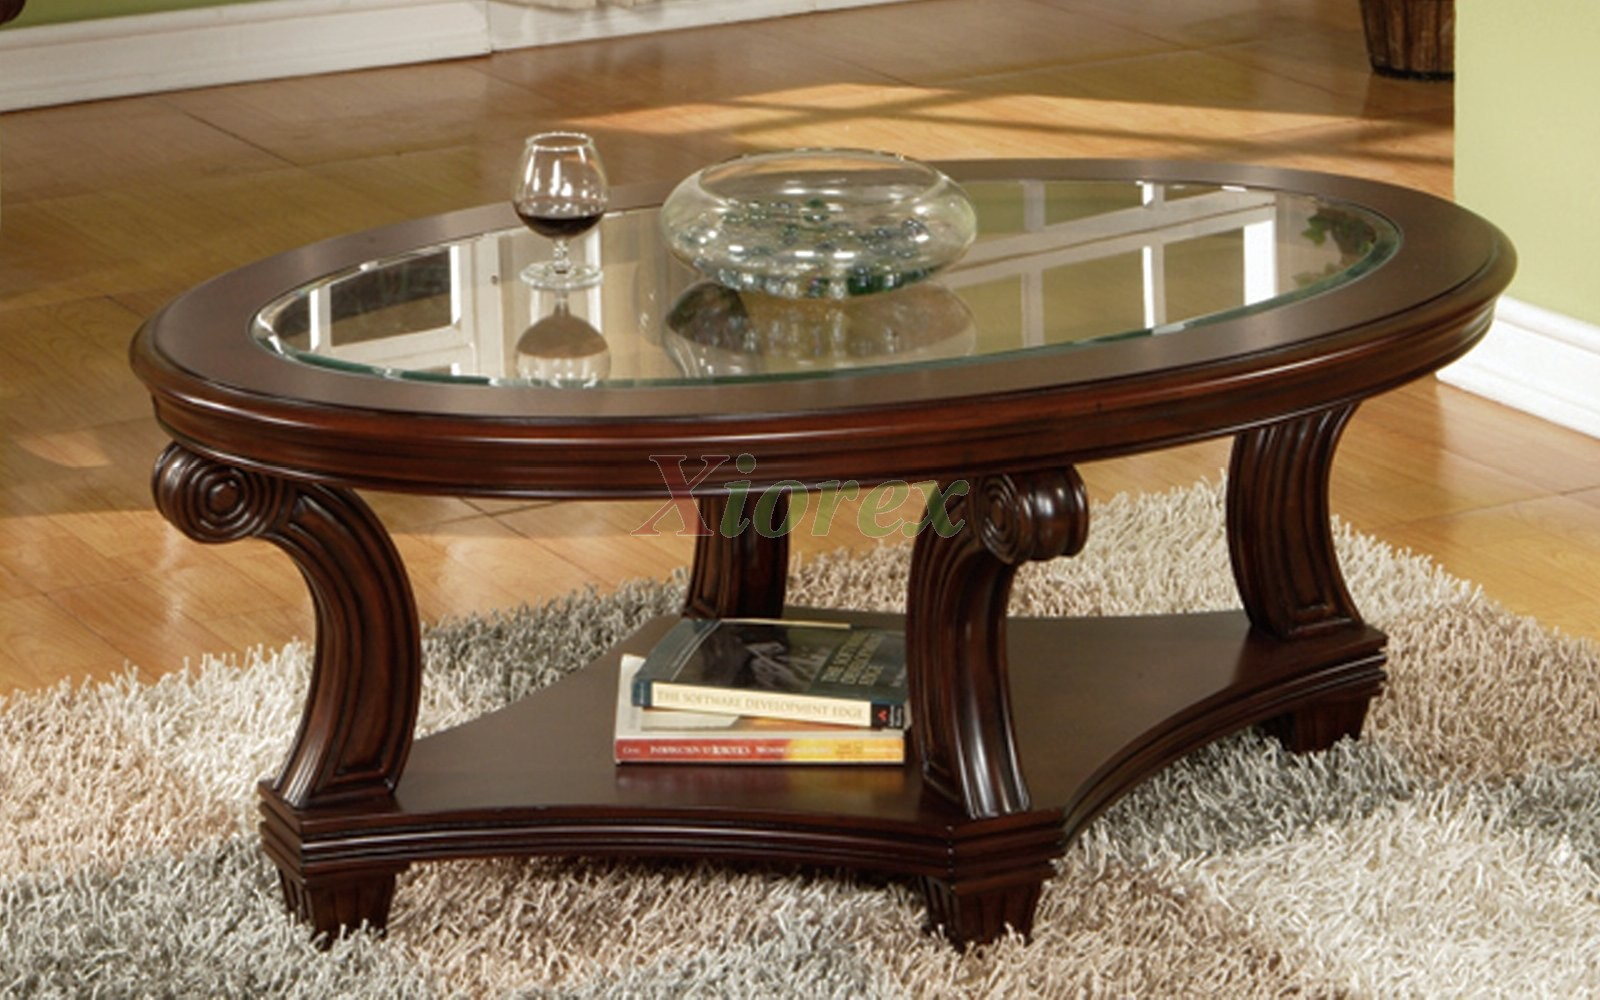 Oval Coffee Table Glass Drawer Wood Storage Accent Side Table Modern Design Sofa Table Contemporary Wooden (Image 6 of 11)